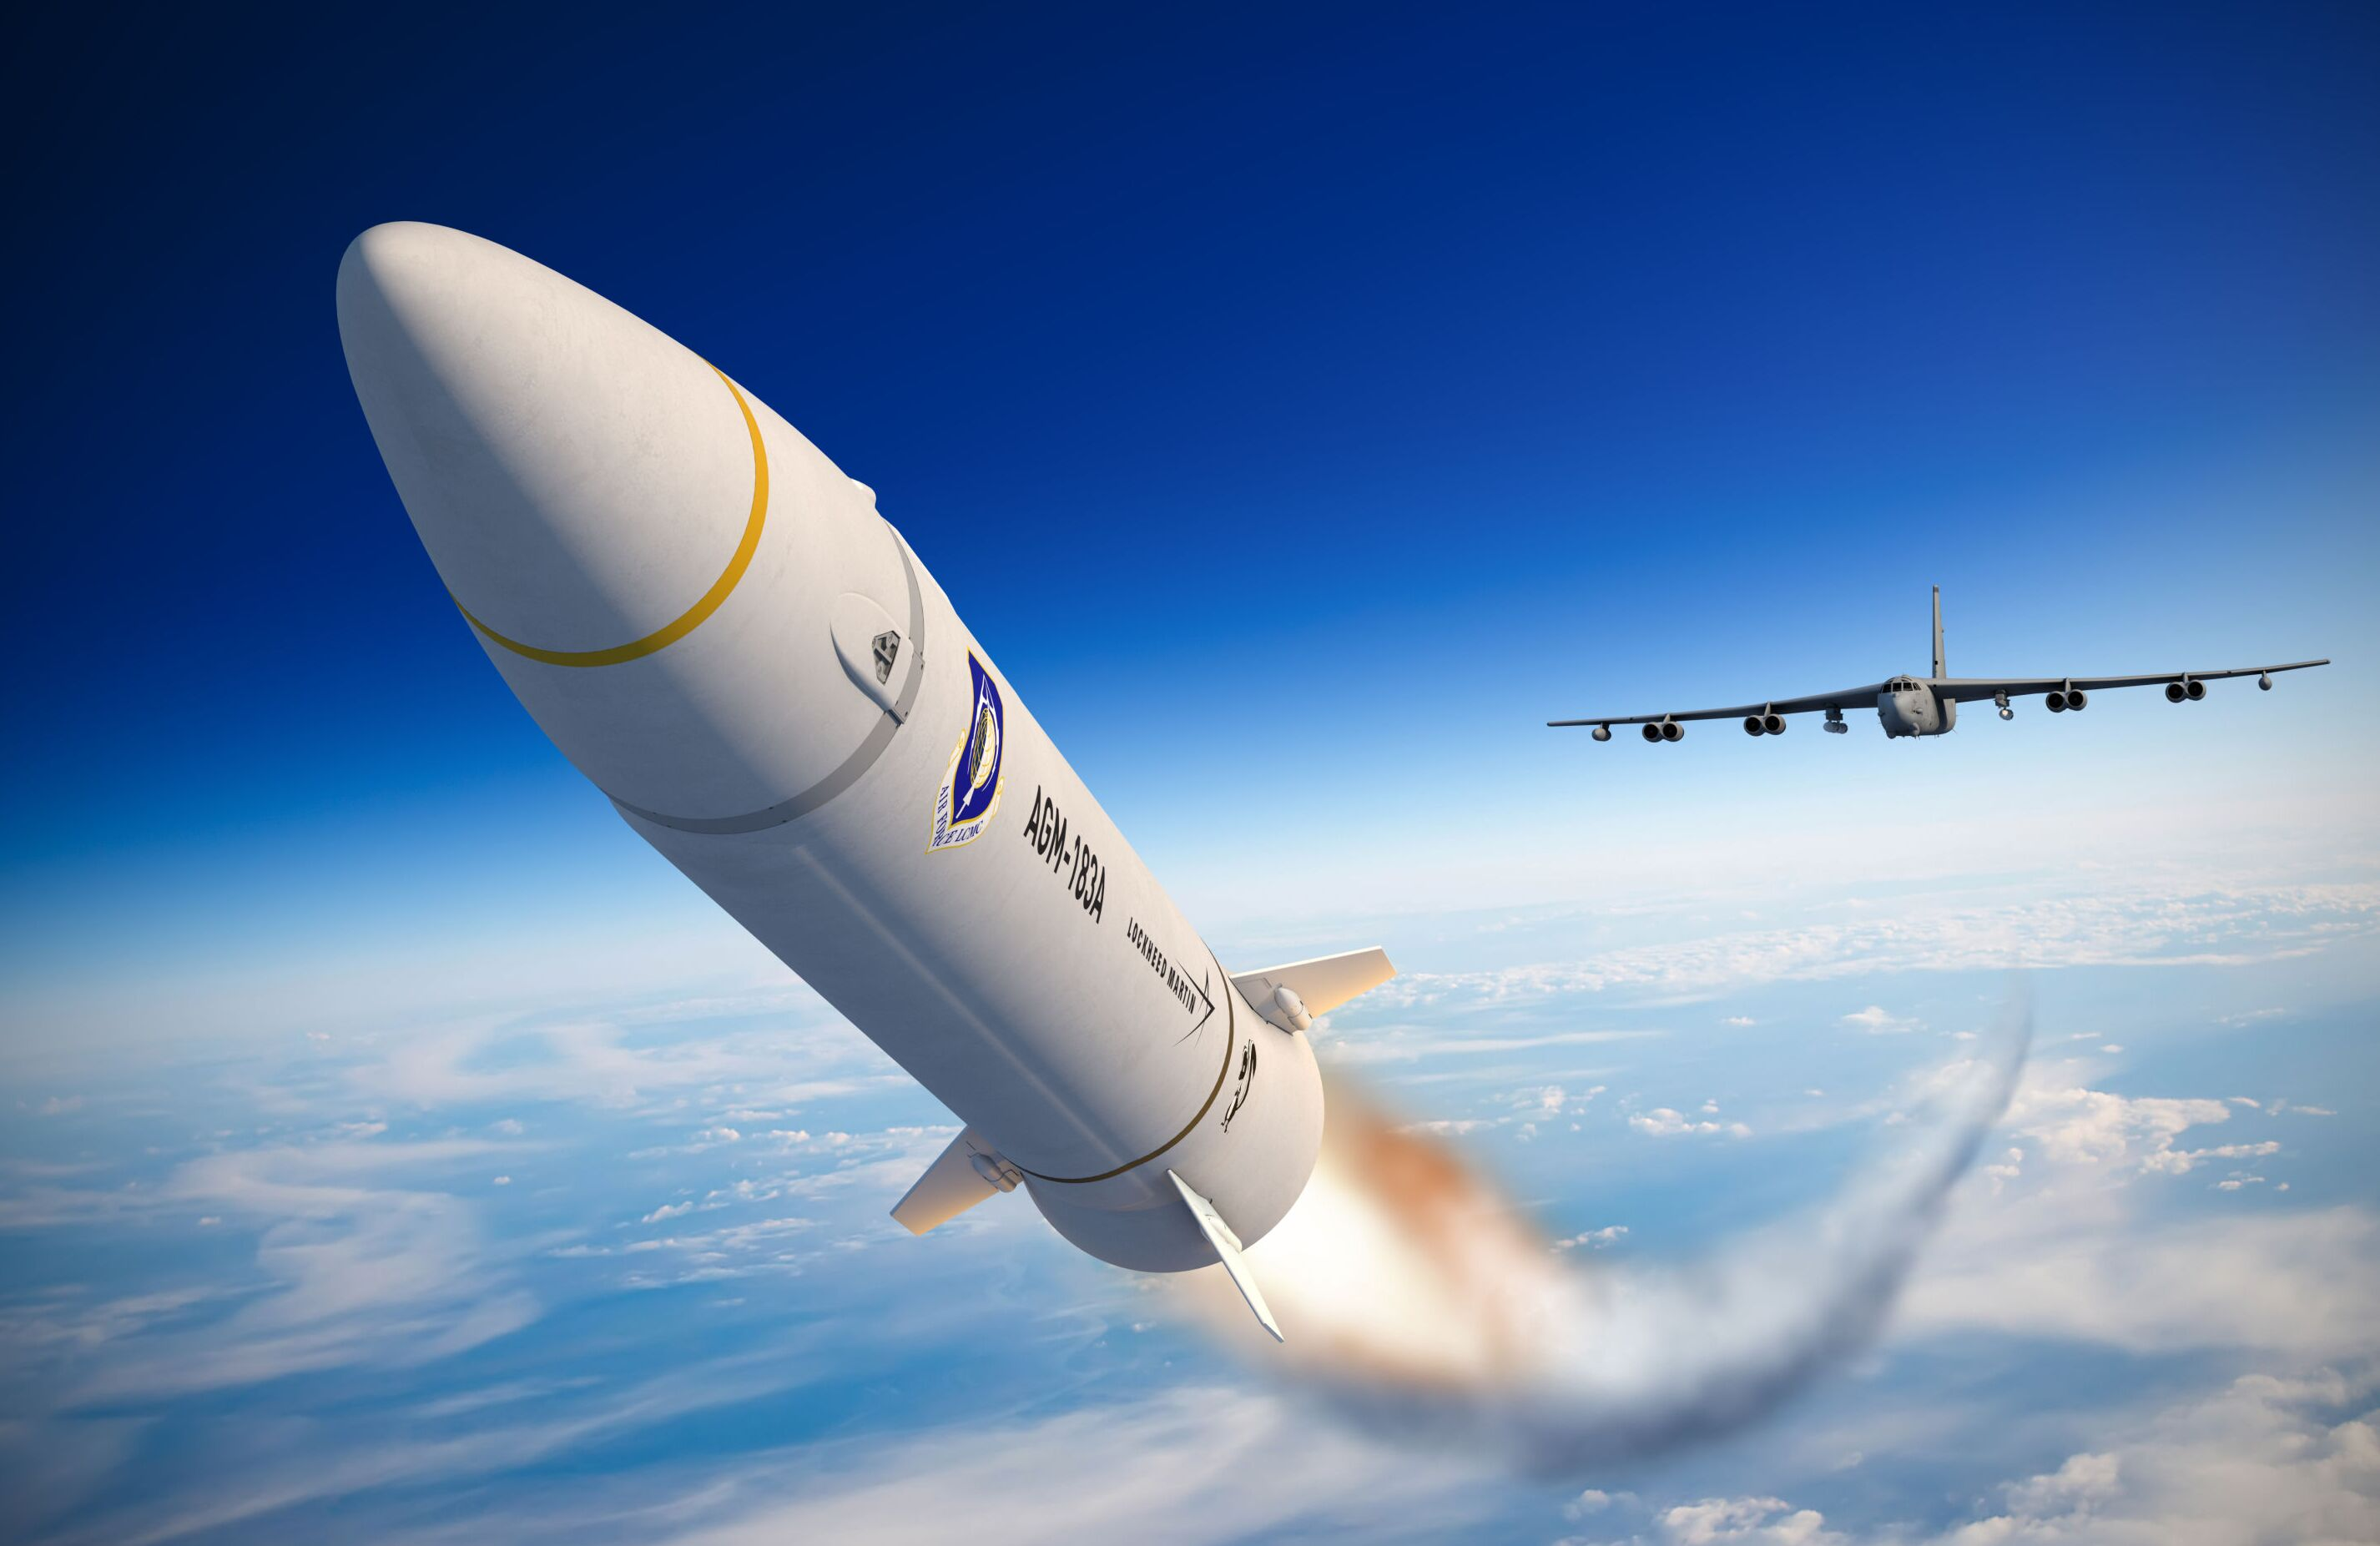 An artist concept of the AGM-183A Air-launched Rapid Response Weapon (ARRW) shows the hypersonic missile after launching from a B-52 bomber, encapsulated in a rocket that accelerates it to hypersonic speed. Lockheed Martin artist rendering.